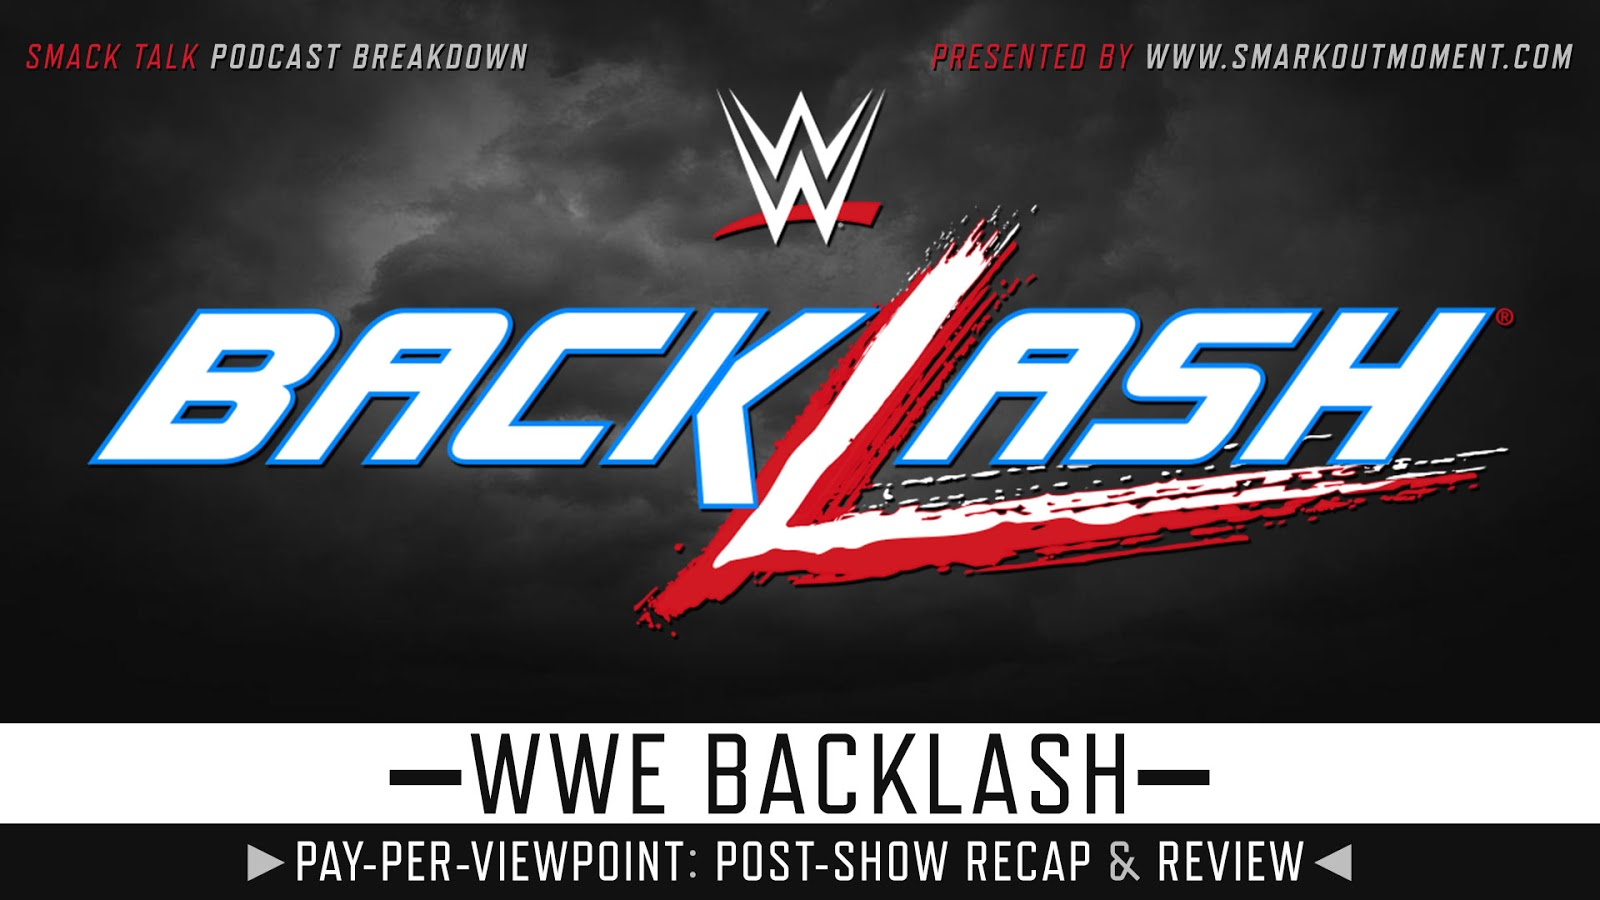 WWE Backlash 2020 Recap and Review Podcast